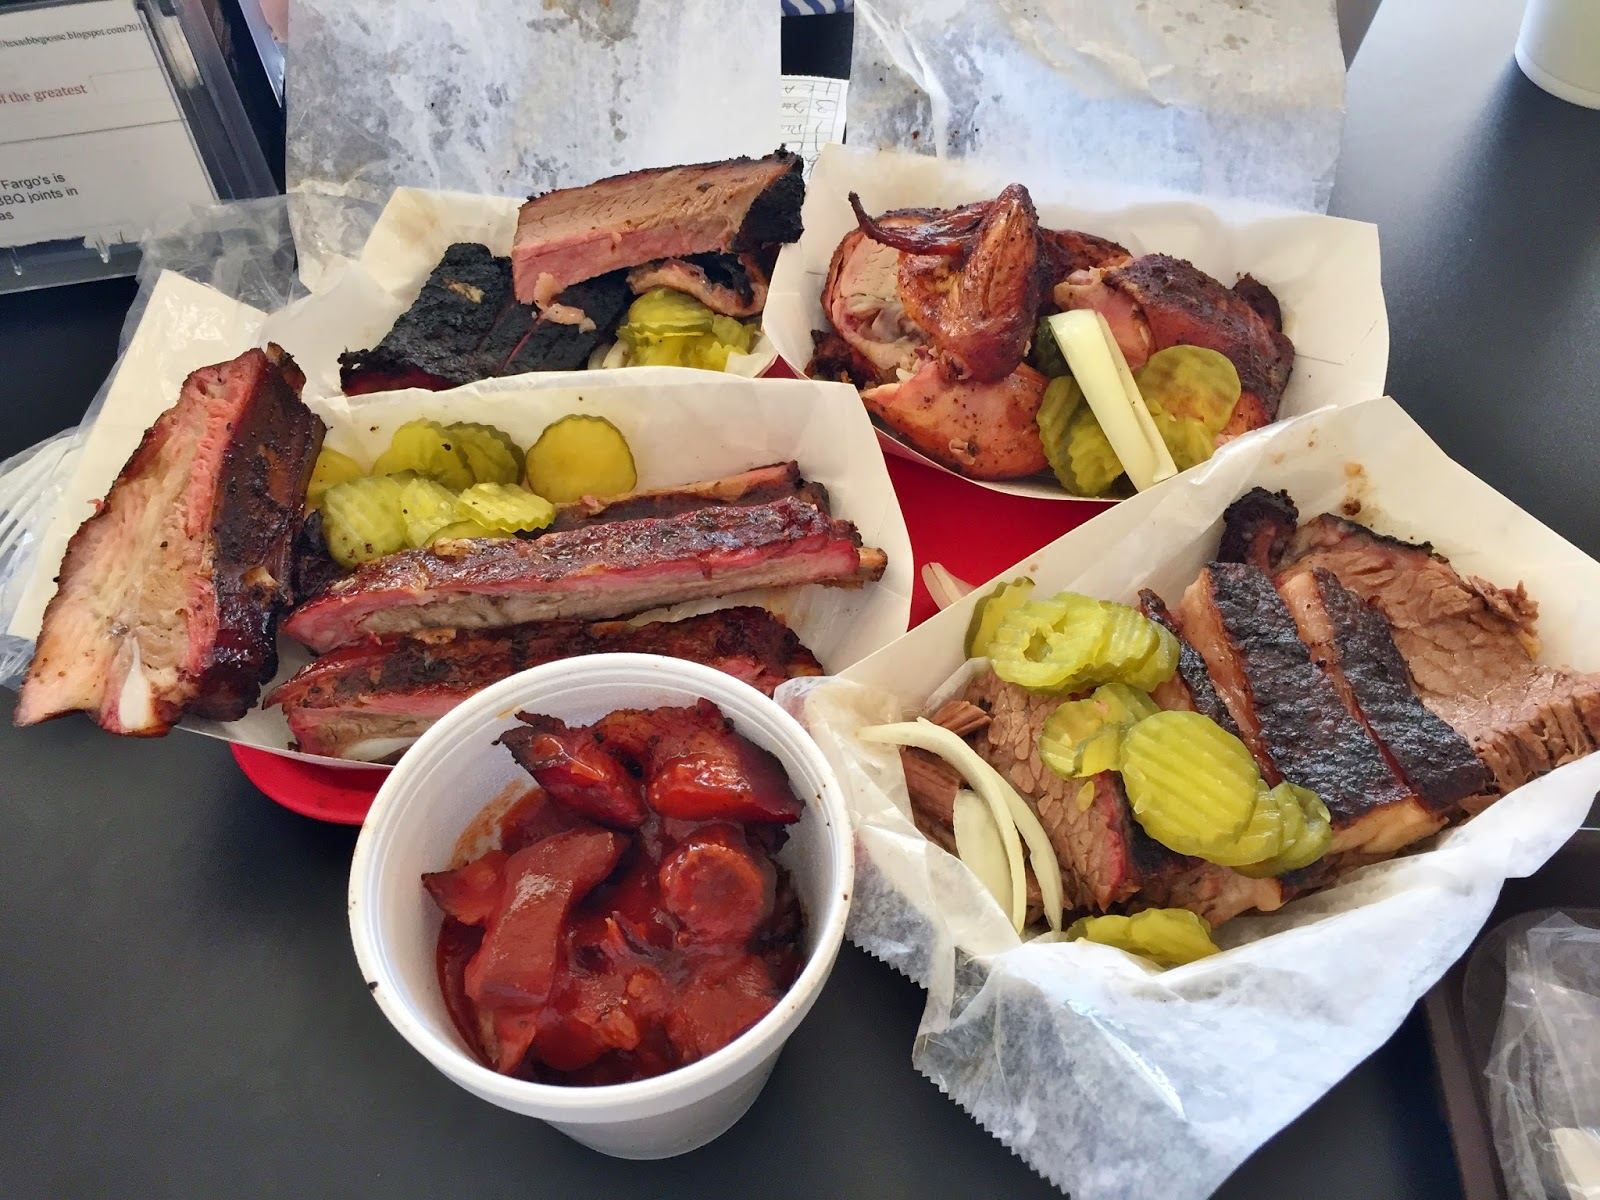 Fargo's brisket, ribs, chicken and rib tips.